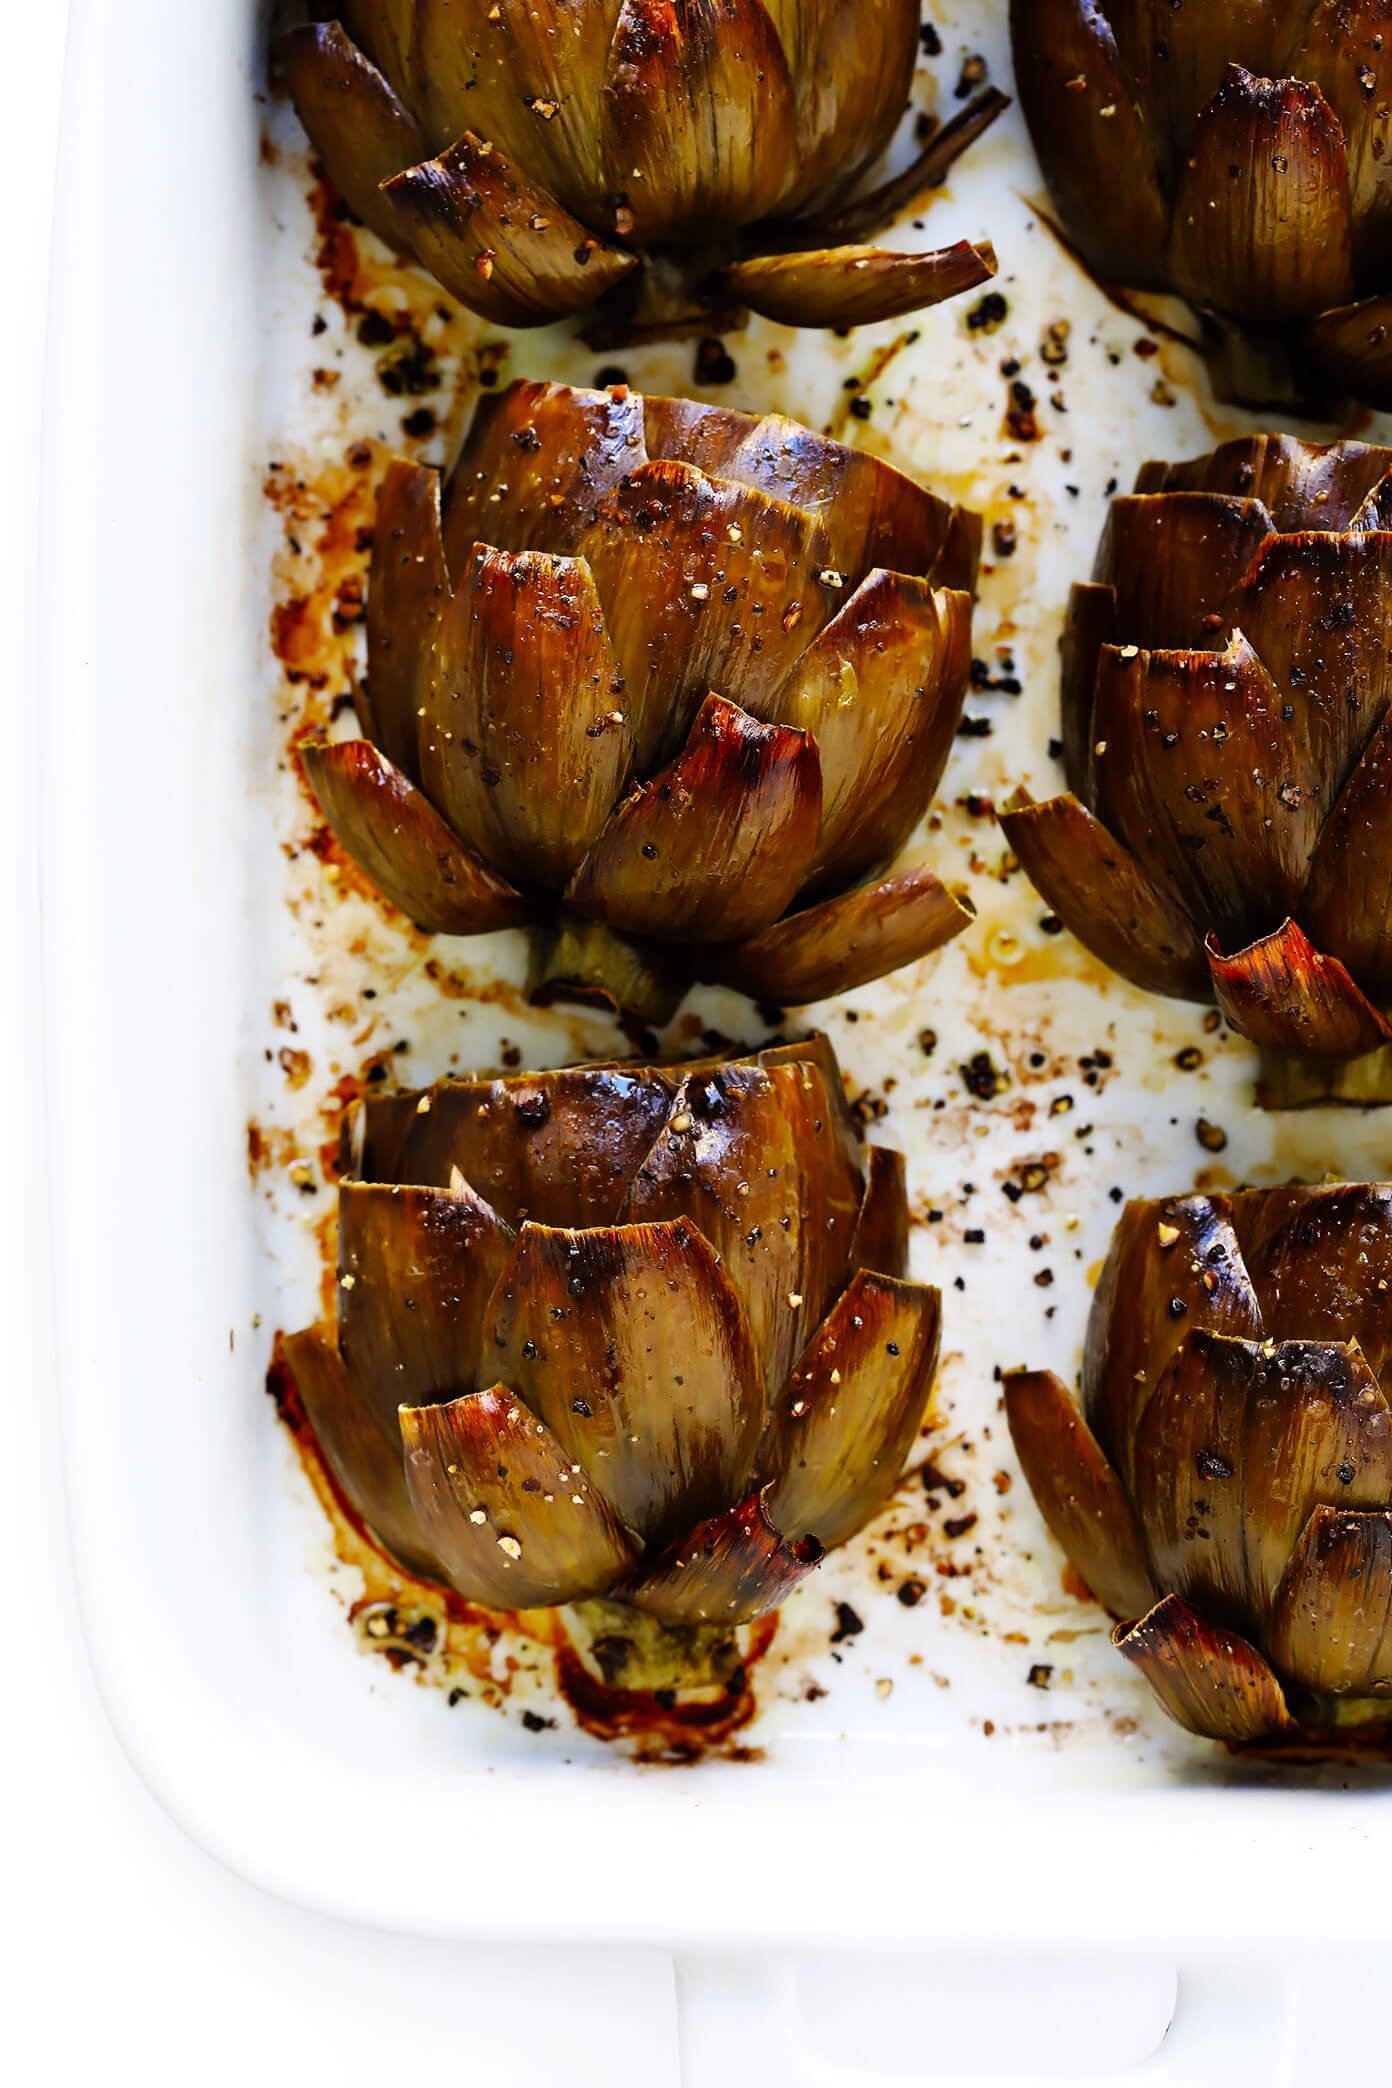 Roasted Artichokes Recipe